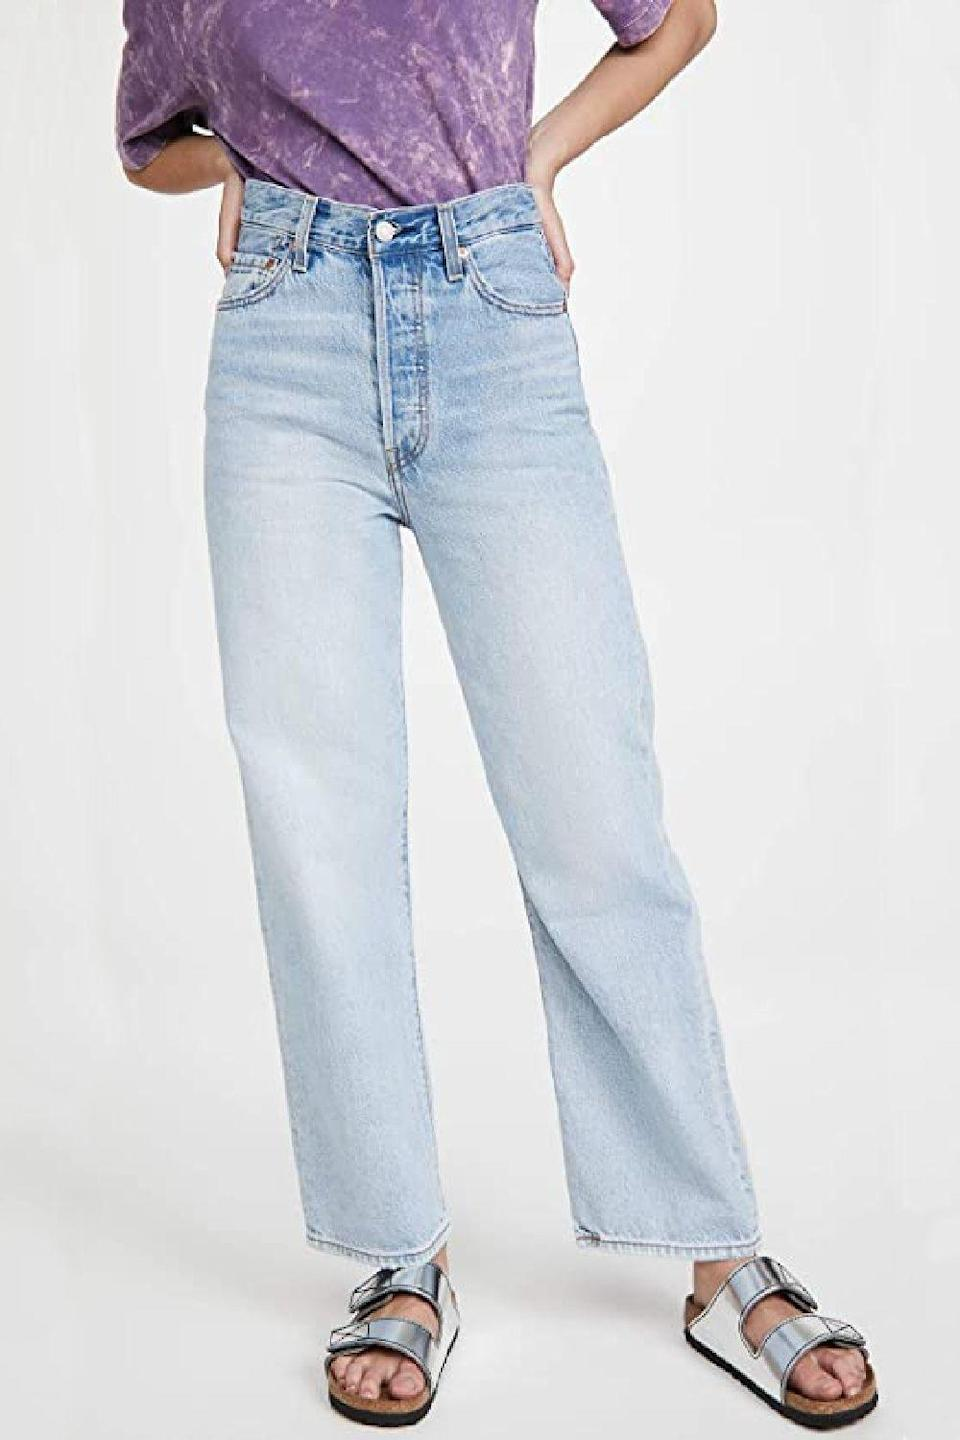 """<p><strong>Levi's</strong></p><p>amazon.com</p><p><strong>$108.00</strong></p><p><a href=""""https://www.amazon.com/dp/B08C512FN6?tag=syn-yahoo-20&ascsubtag=%5Bartid%7C10056.g.36355801%5Bsrc%7Cyahoo-us"""" rel=""""nofollow noopener"""" target=""""_blank"""" data-ylk=""""slk:Shop Now"""" class=""""link rapid-noclick-resp"""">Shop Now</a></p><p>Who doesn't love Levi's?! Whether you collect their classic denim jackets or are always adding to your ever-growing jean collection, you'll love being able to easily shop options from the clothing brand.</p>"""